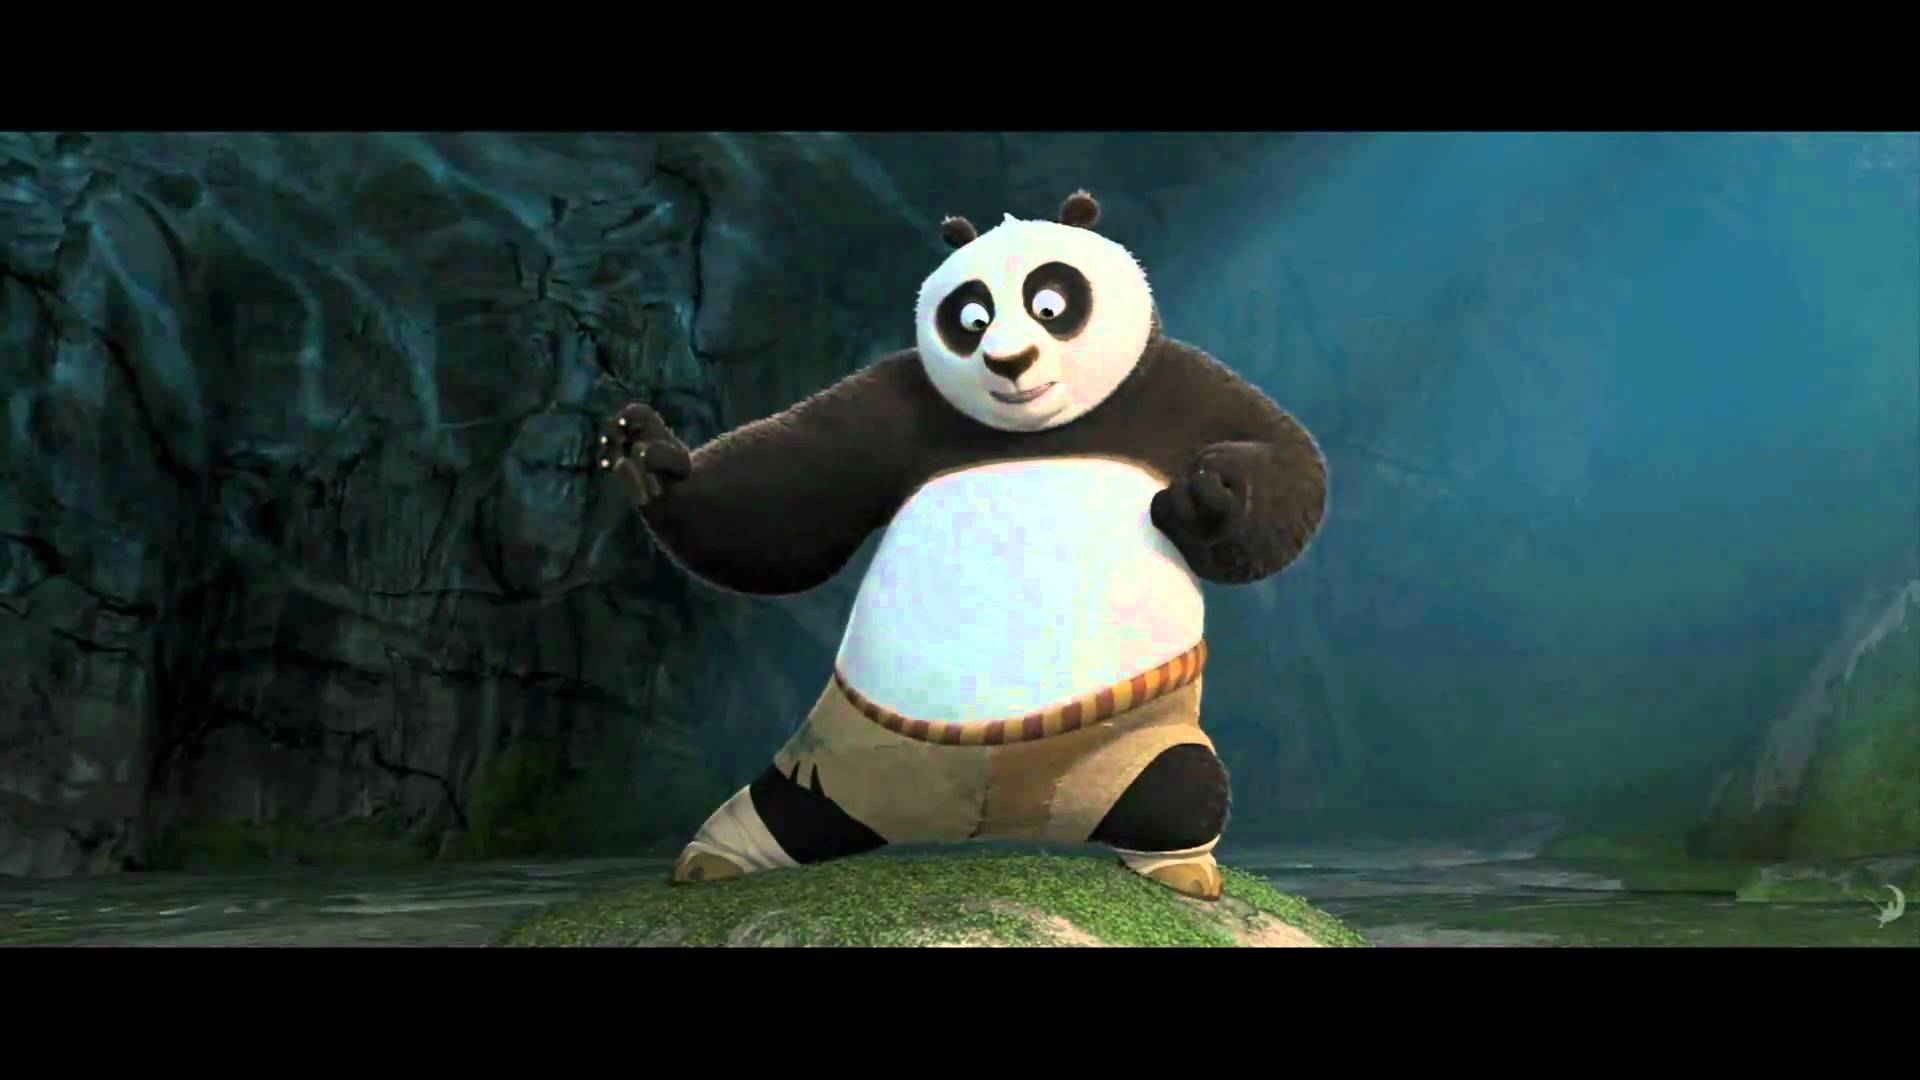 kung-fu-panda-wallpapers-hd-free-download | wallpaper.wiki